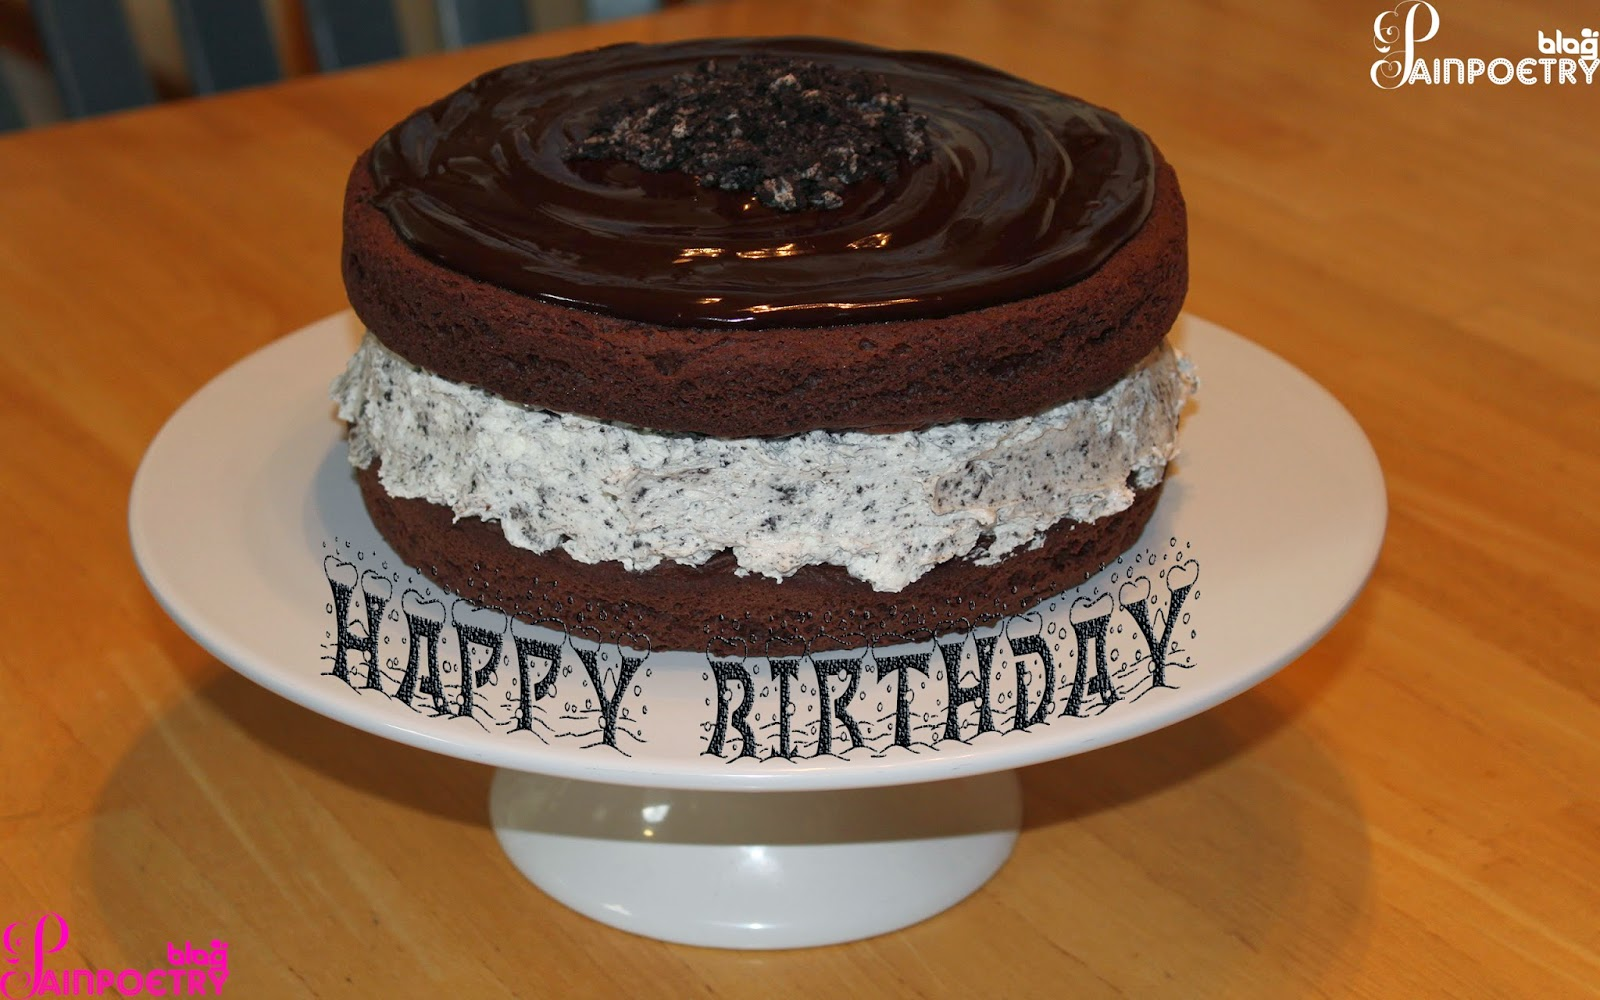 Happy-Birthday-Wishes-Image-Photo-Cocolate-Cake-On-The-Plate-HD-Wide